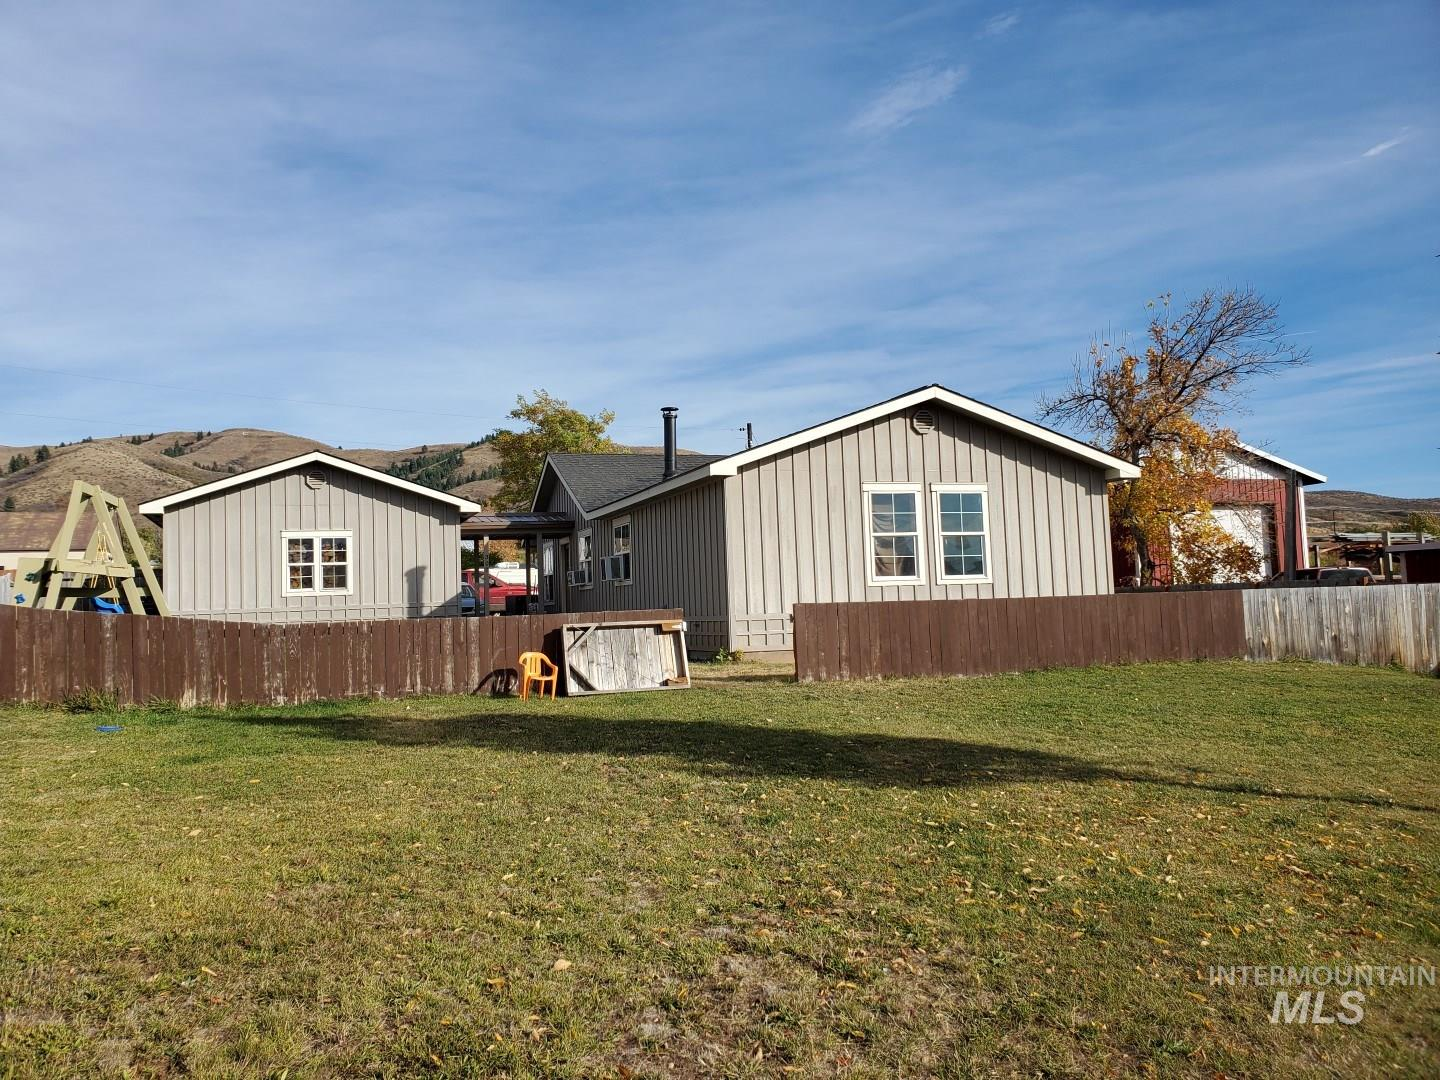 307 S Fairfield, Council, Idaho 83612, 3 Bedrooms, 2 Bathrooms, Residential For Sale, Price $189,900, 98784490